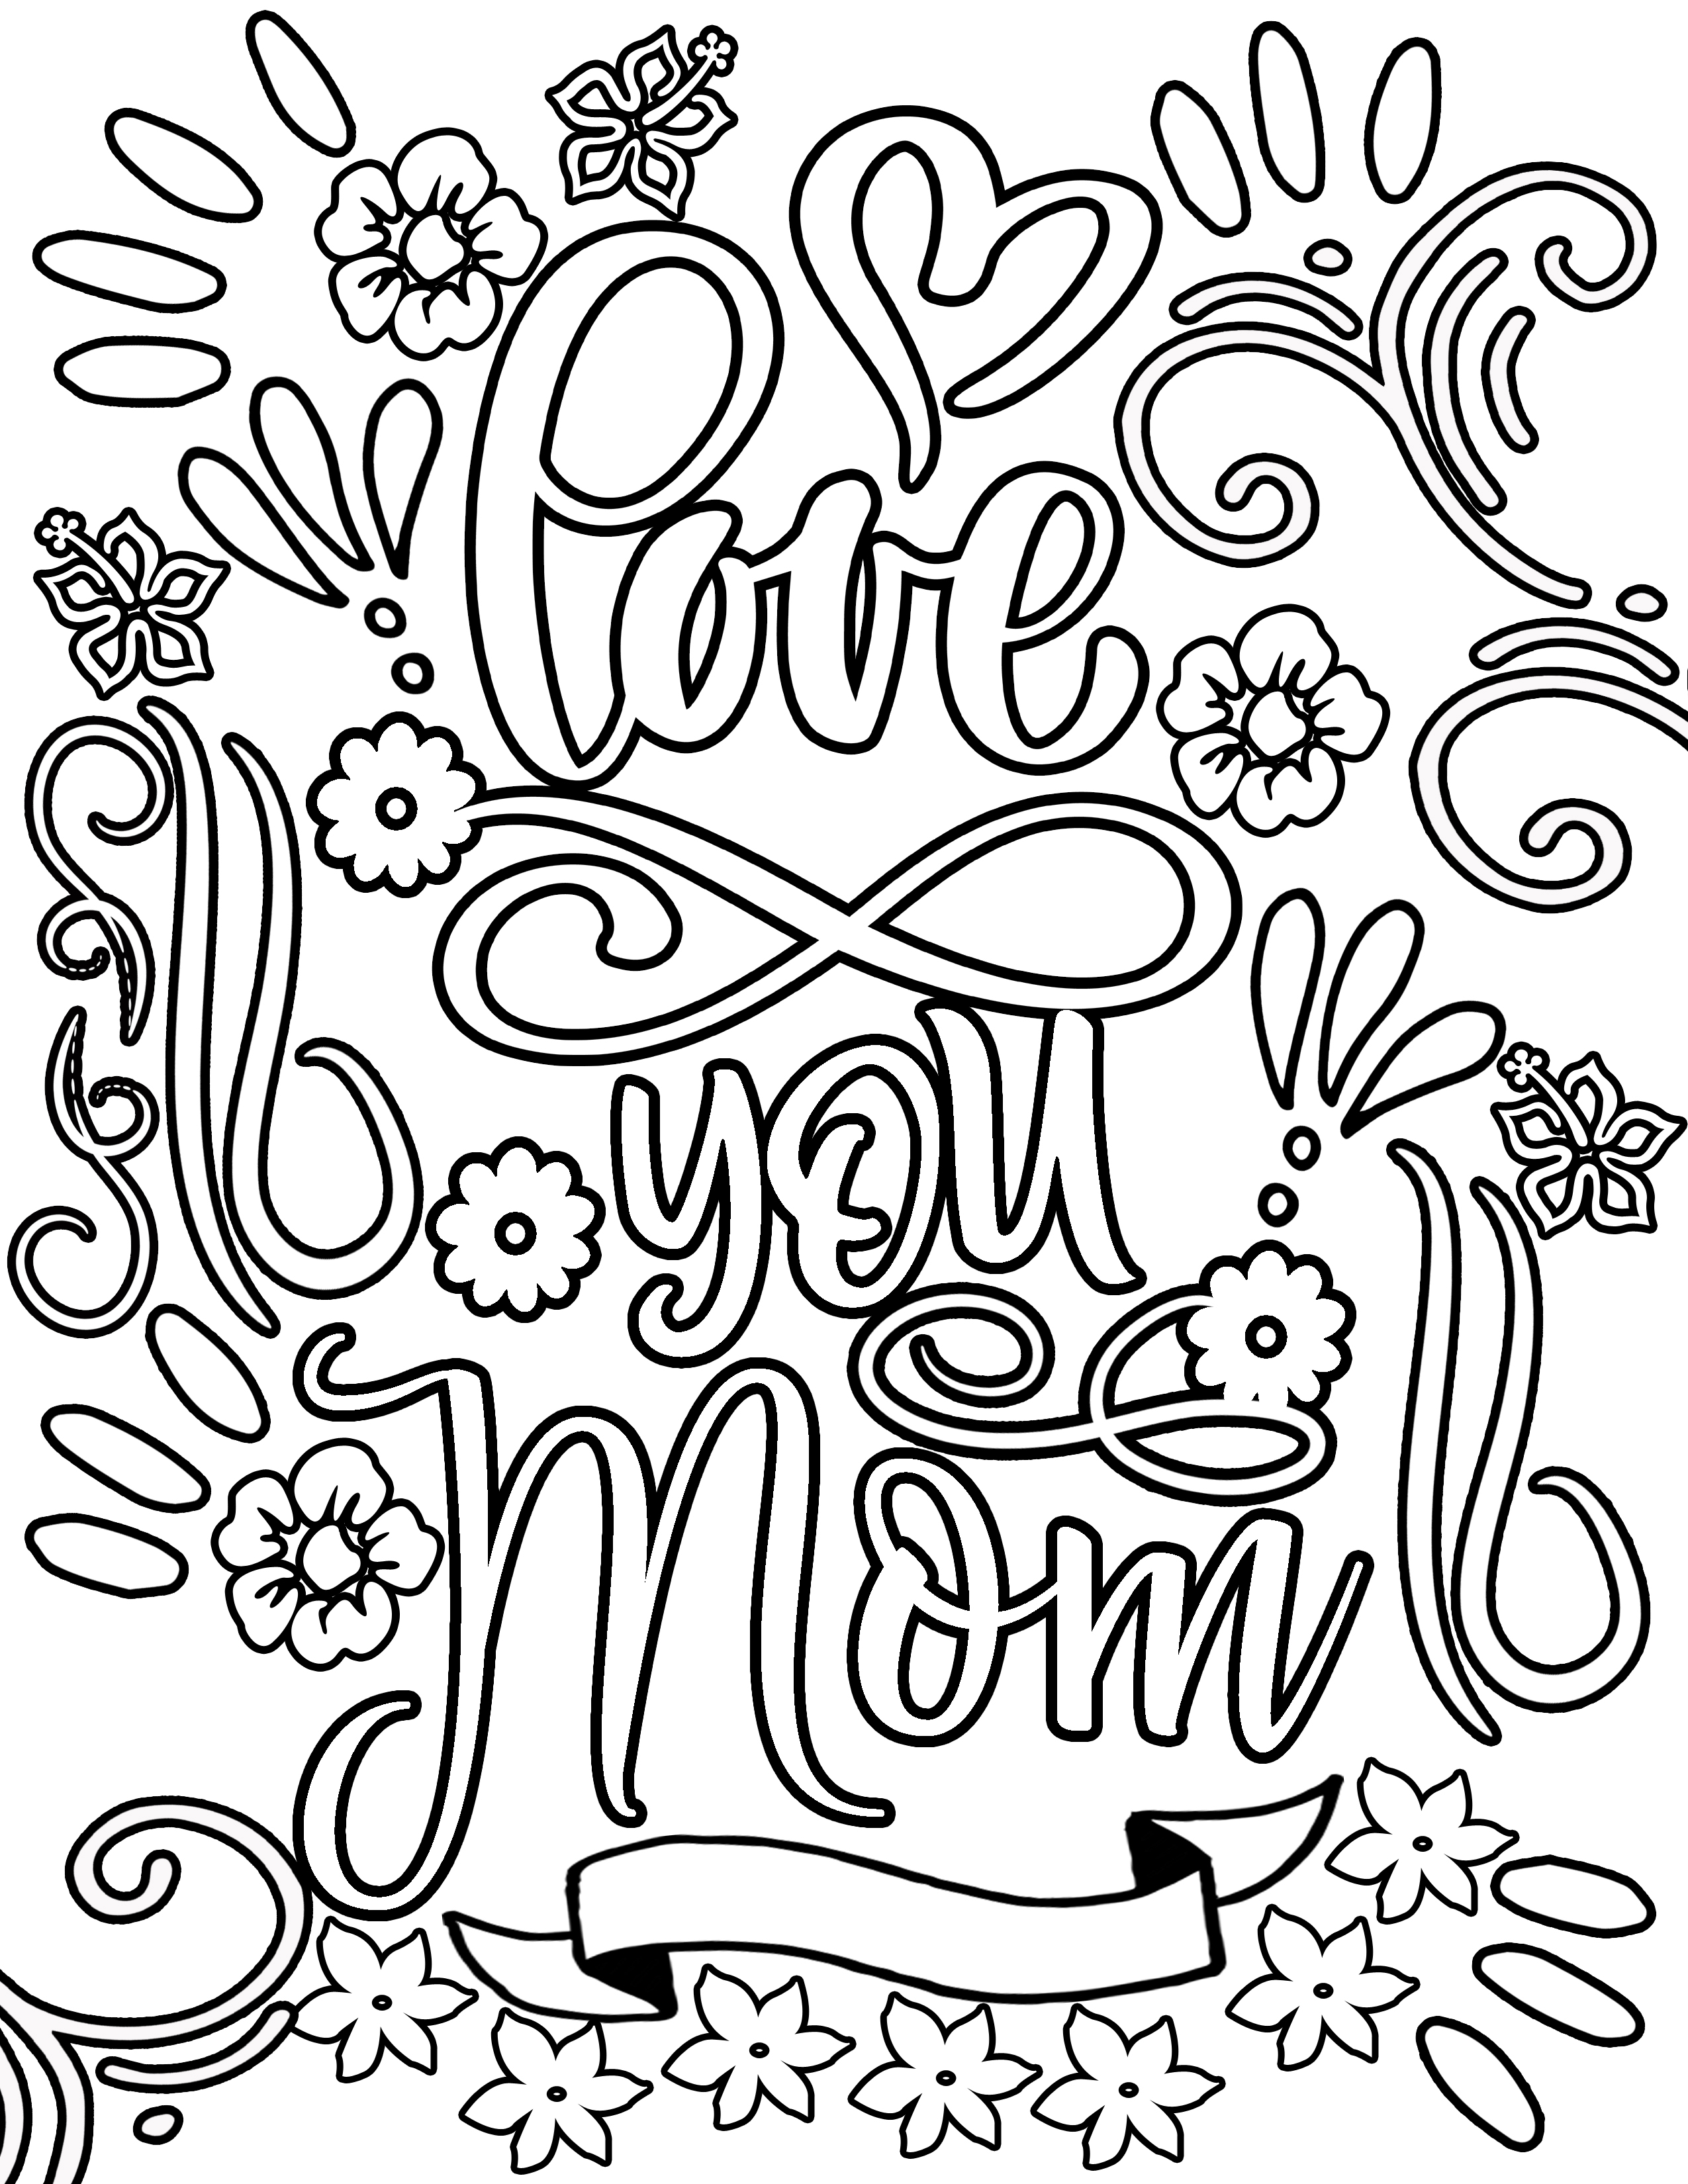 LOVE YOU MOM MOTHER'S DAY flower with vines and frills Clipart Coloring Pages for Kids Adults Art Activities Line Art